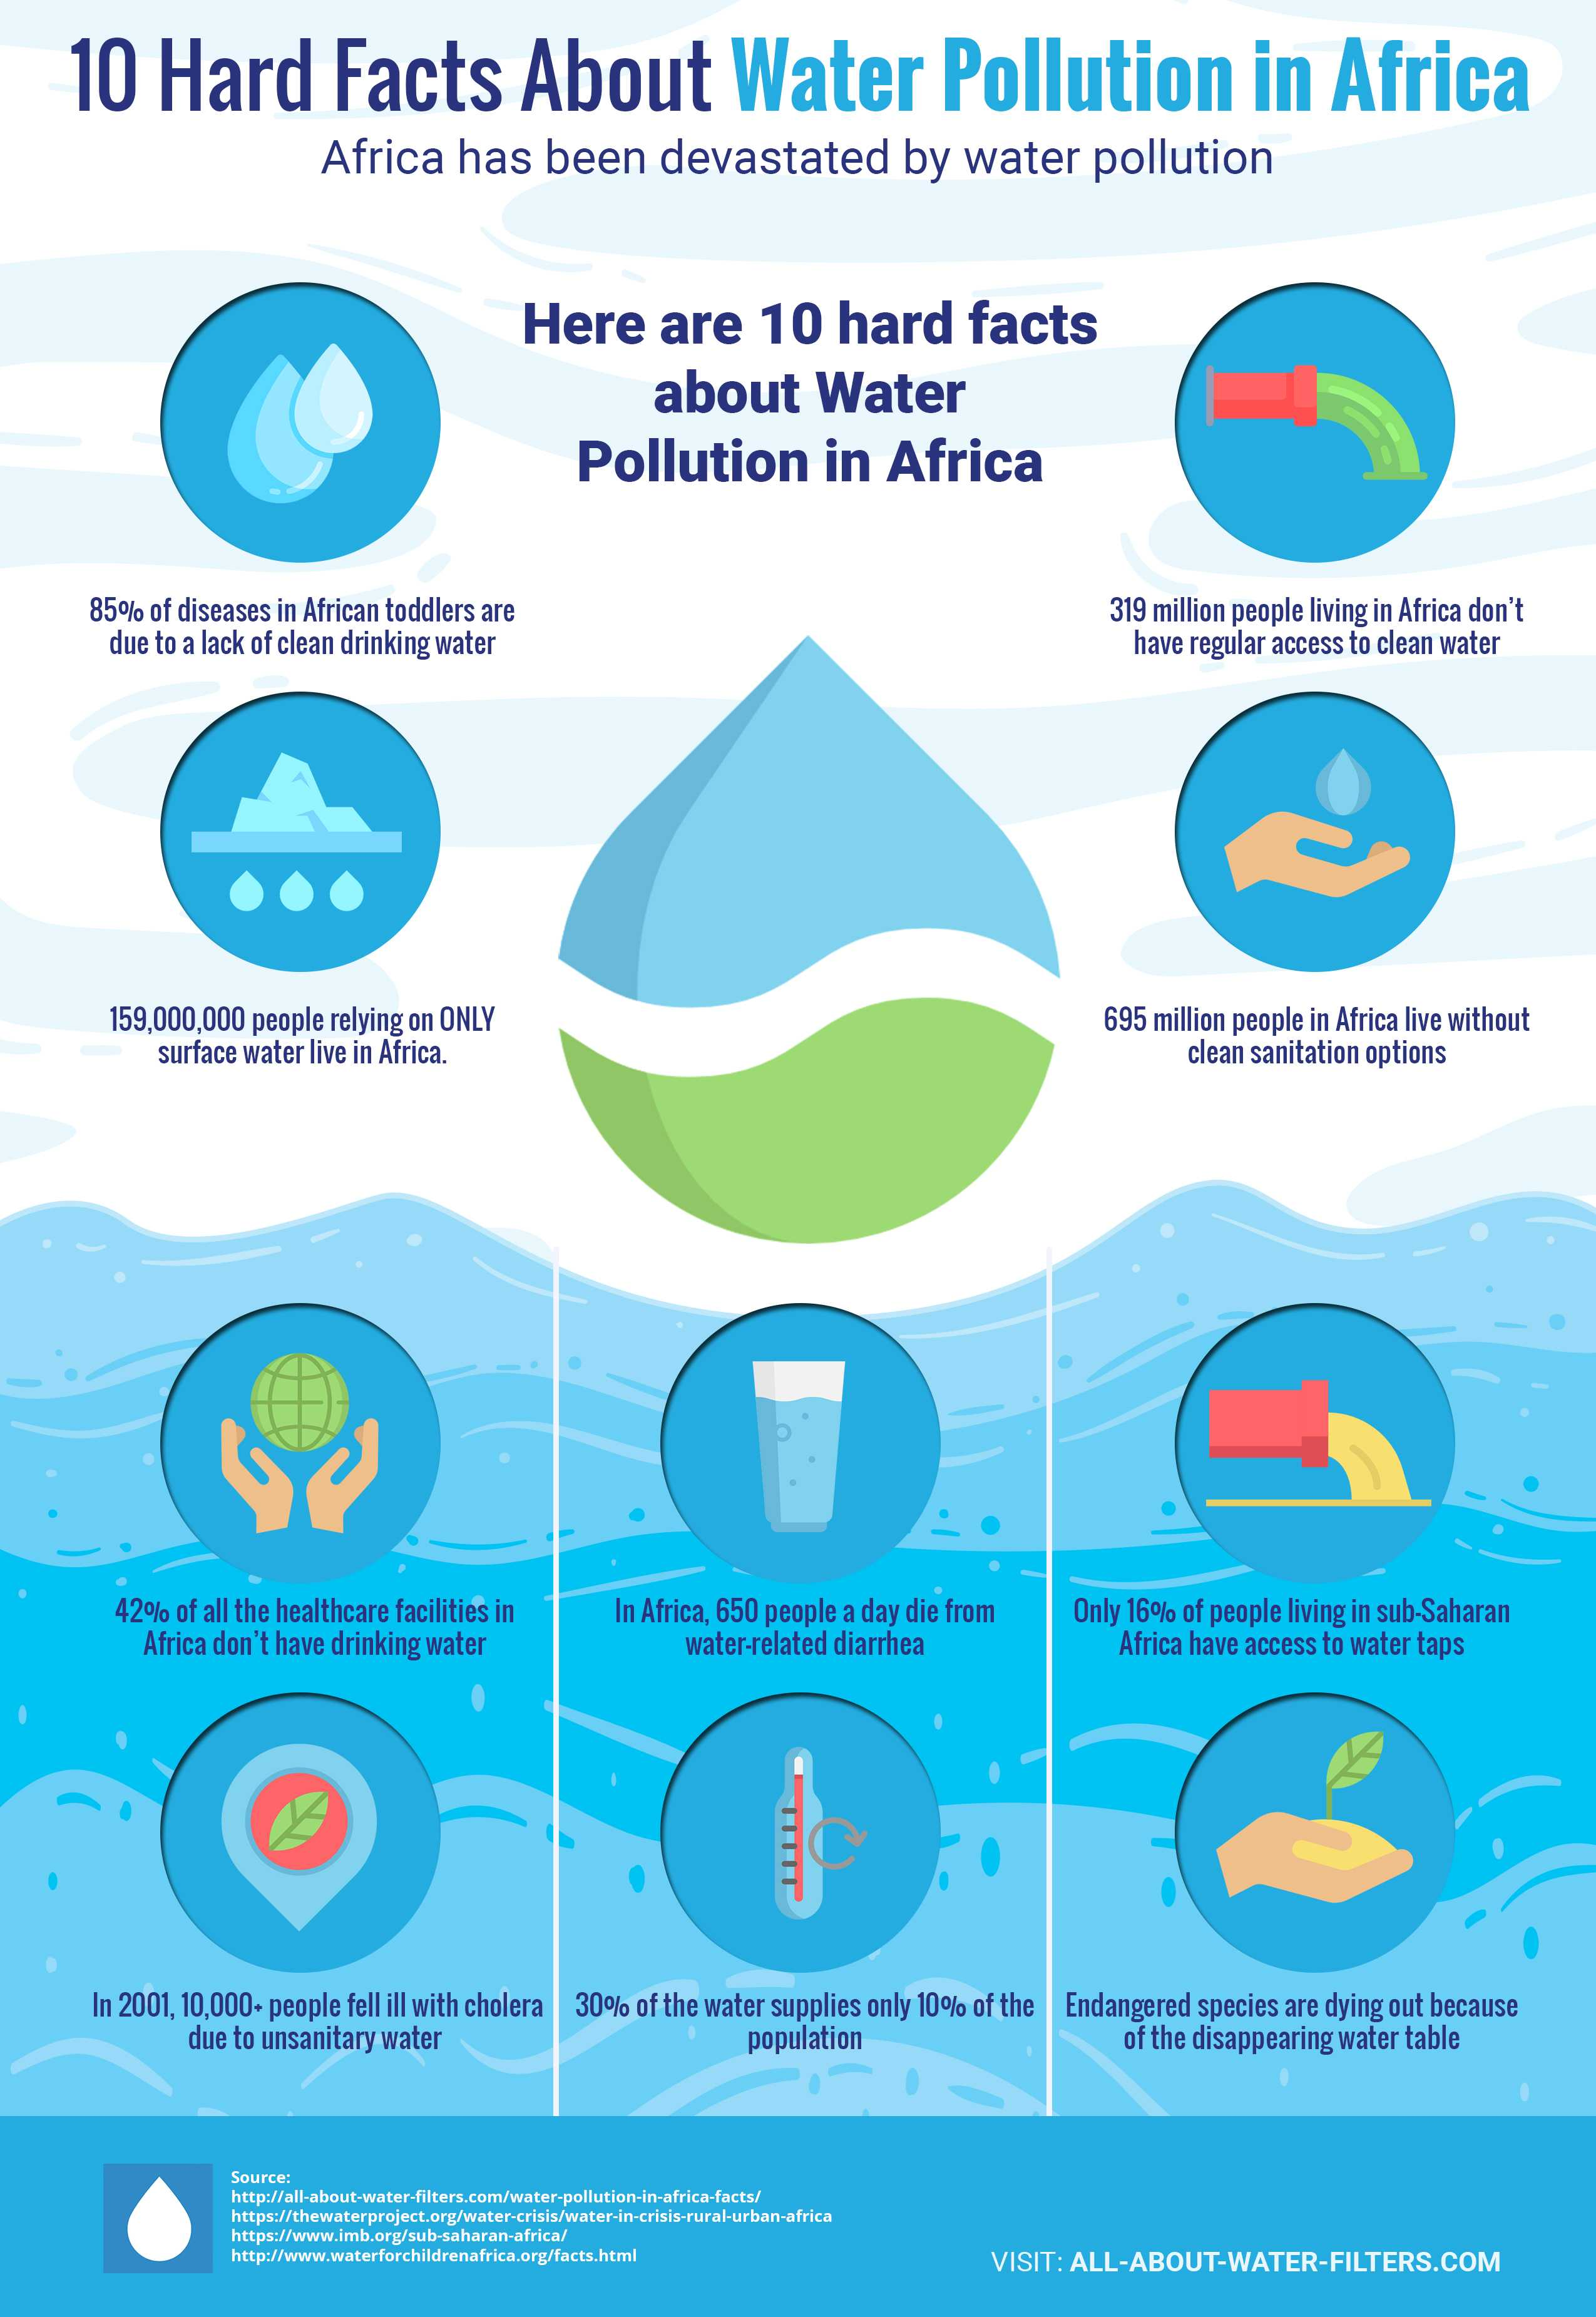 15 Distressing Truths About Water Pollution in Africa (EXTREME CRISIS)